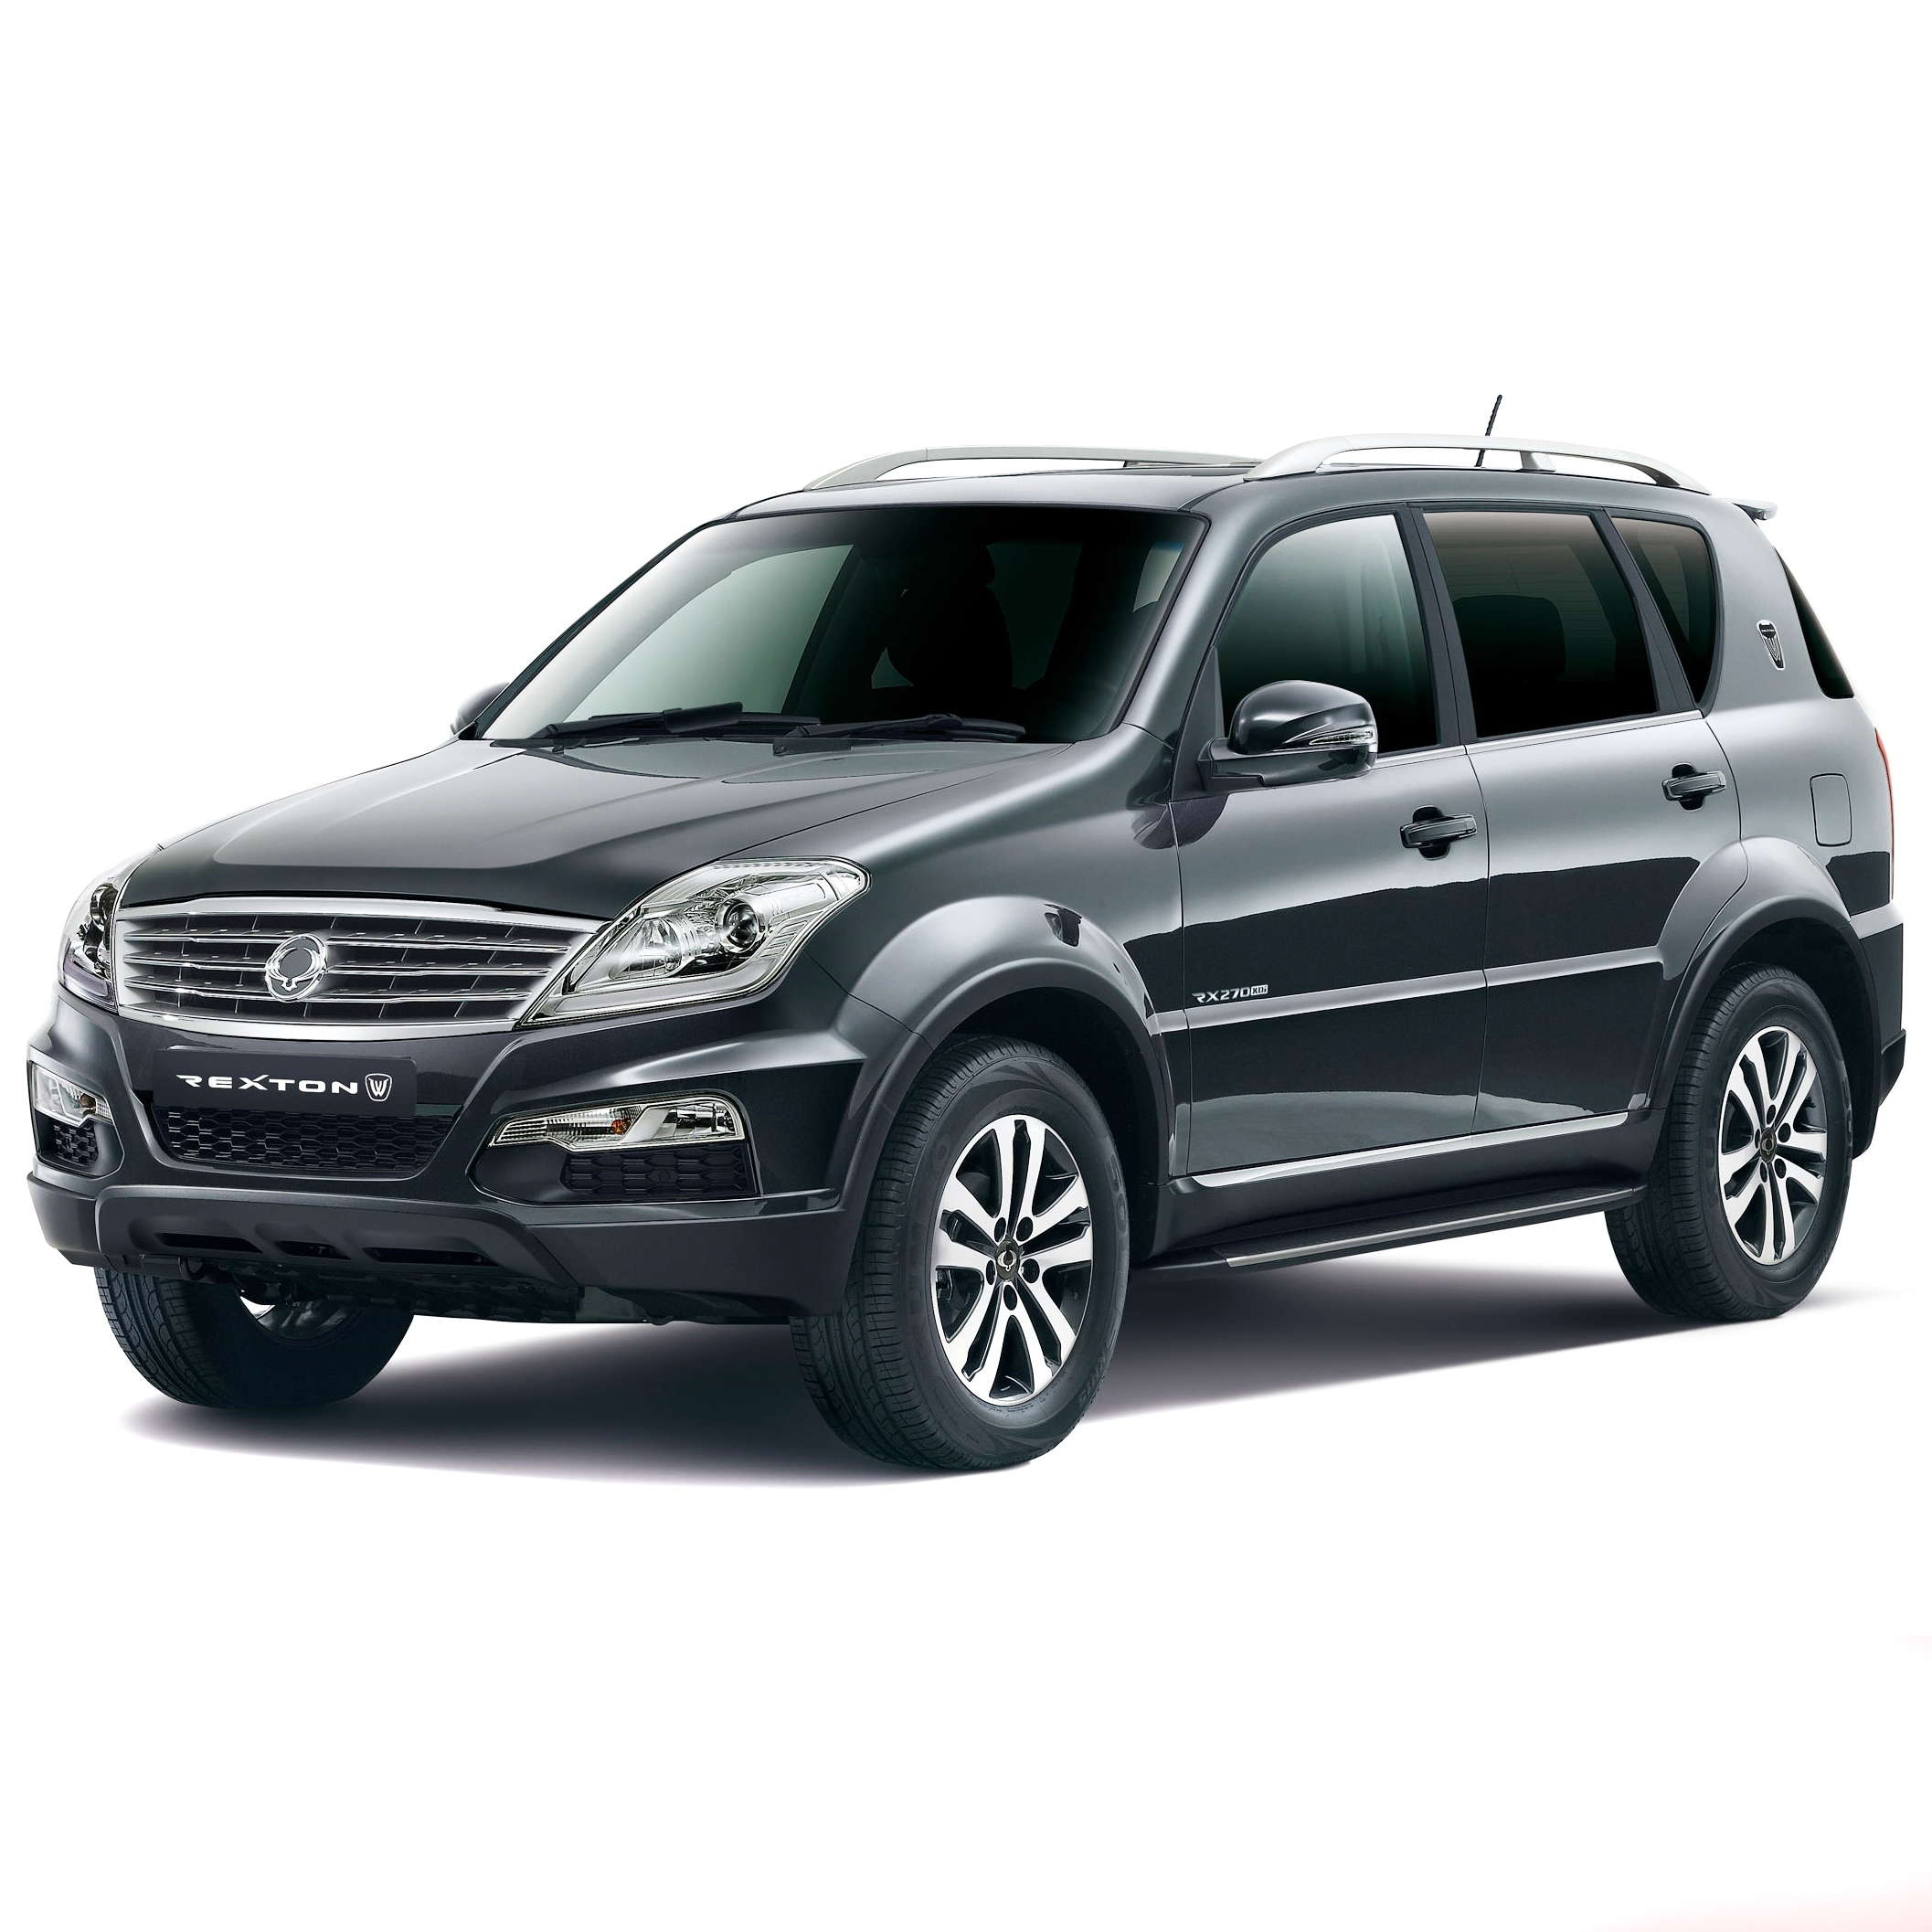 Ssang Yong Rexton Car Mats (All Models)